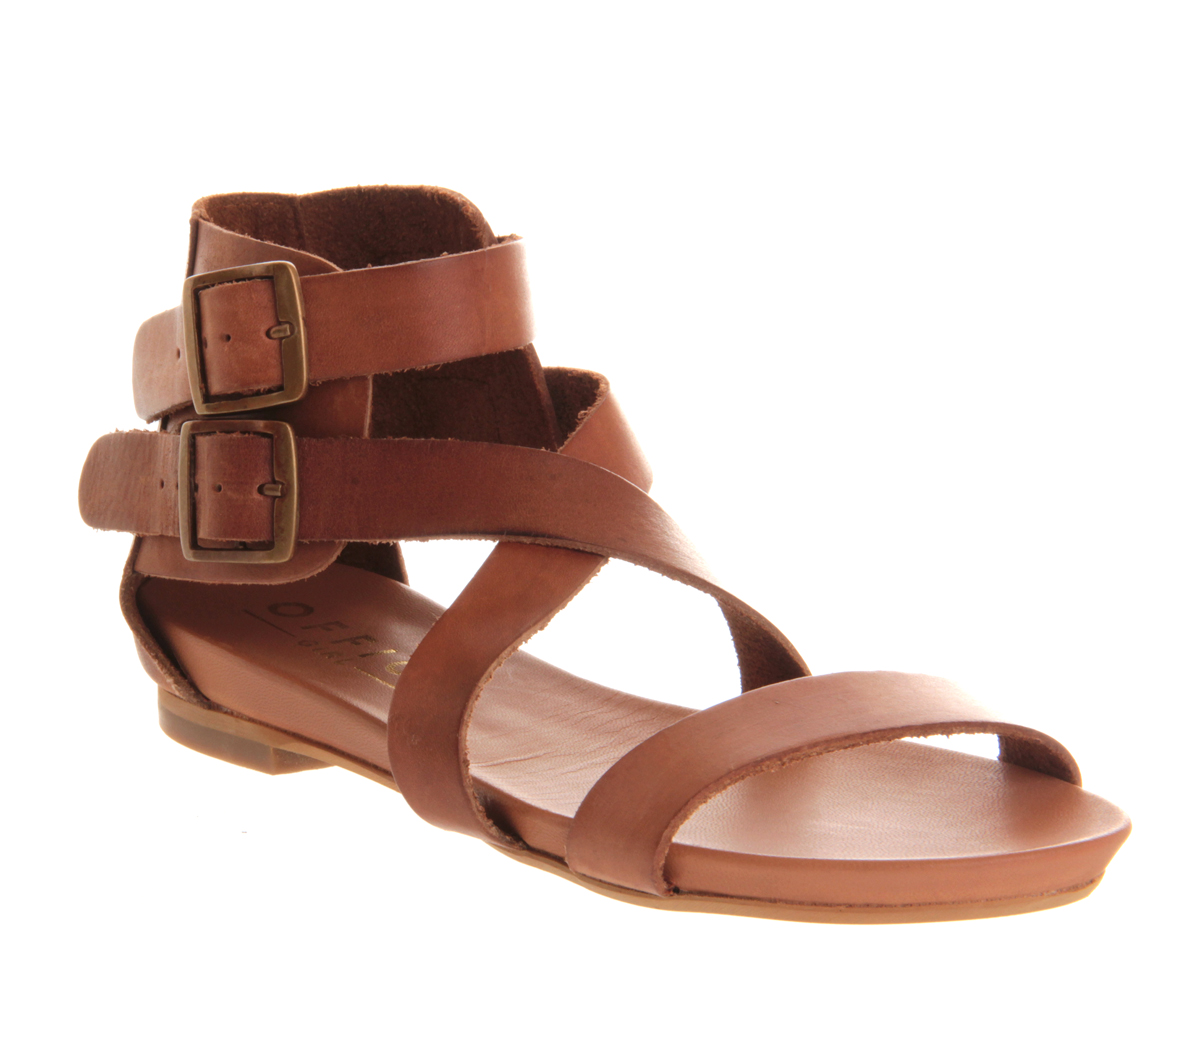 Unique Shoes Are To Men, What Handbags Are To Women A Noncompromising Accessory  If I Were You, I Would Opt For Colors Like Tan, Beige Or Light Brown For Maximal